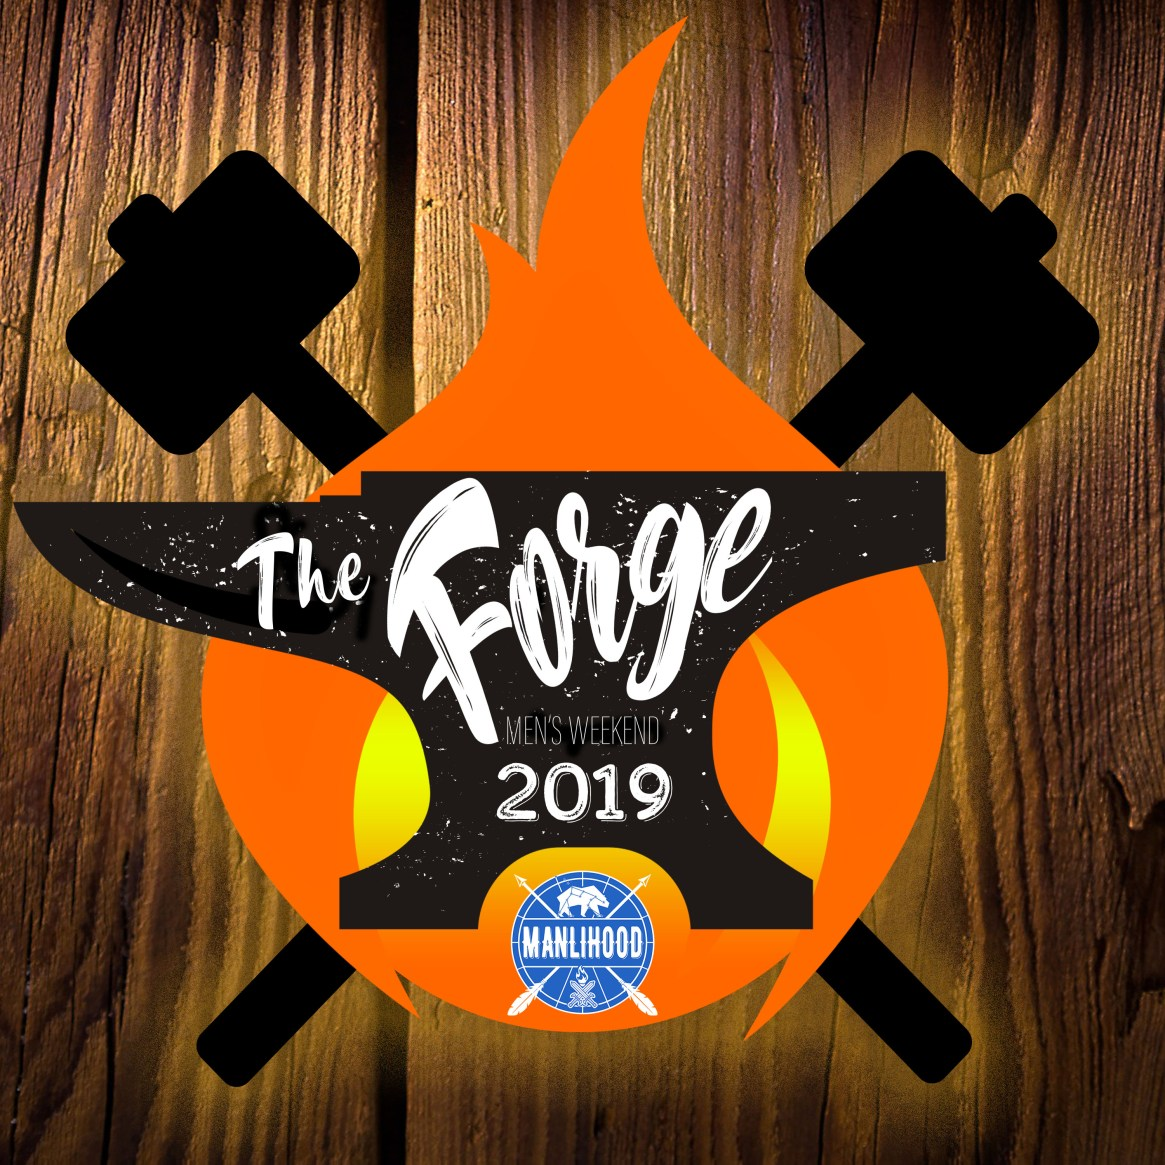 The Forge Insta